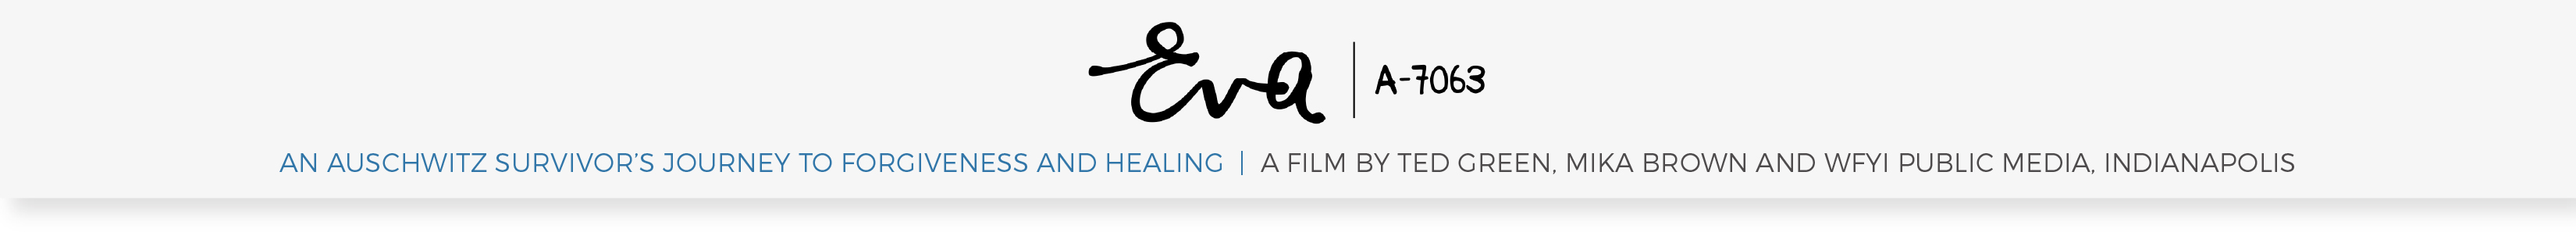 """Eva"" An Auschwitz survivor's journey to forgiveness and healing 